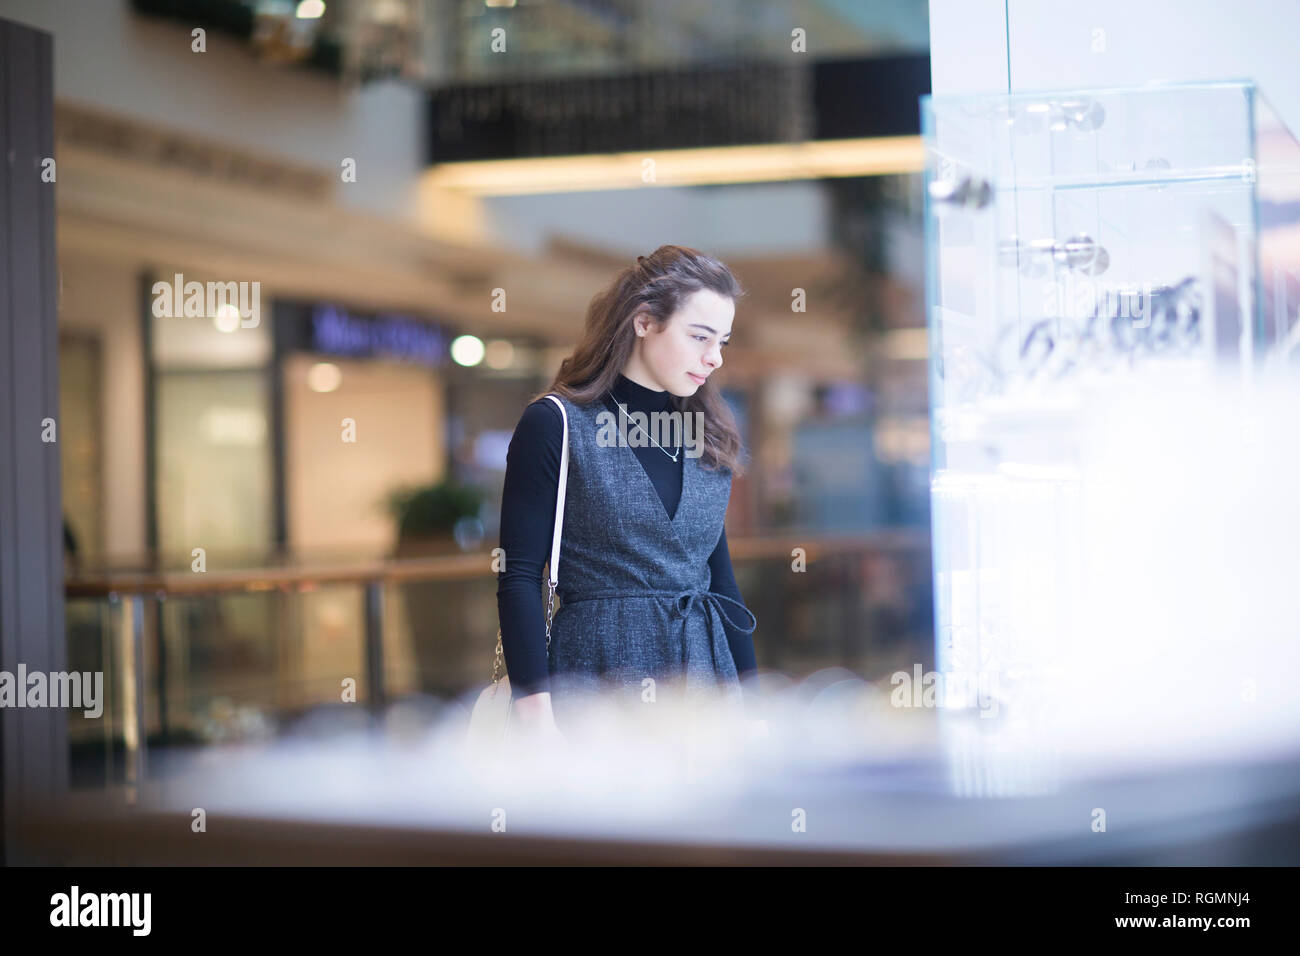 Young woman looking at showcase in a shopping mall - Stock Image